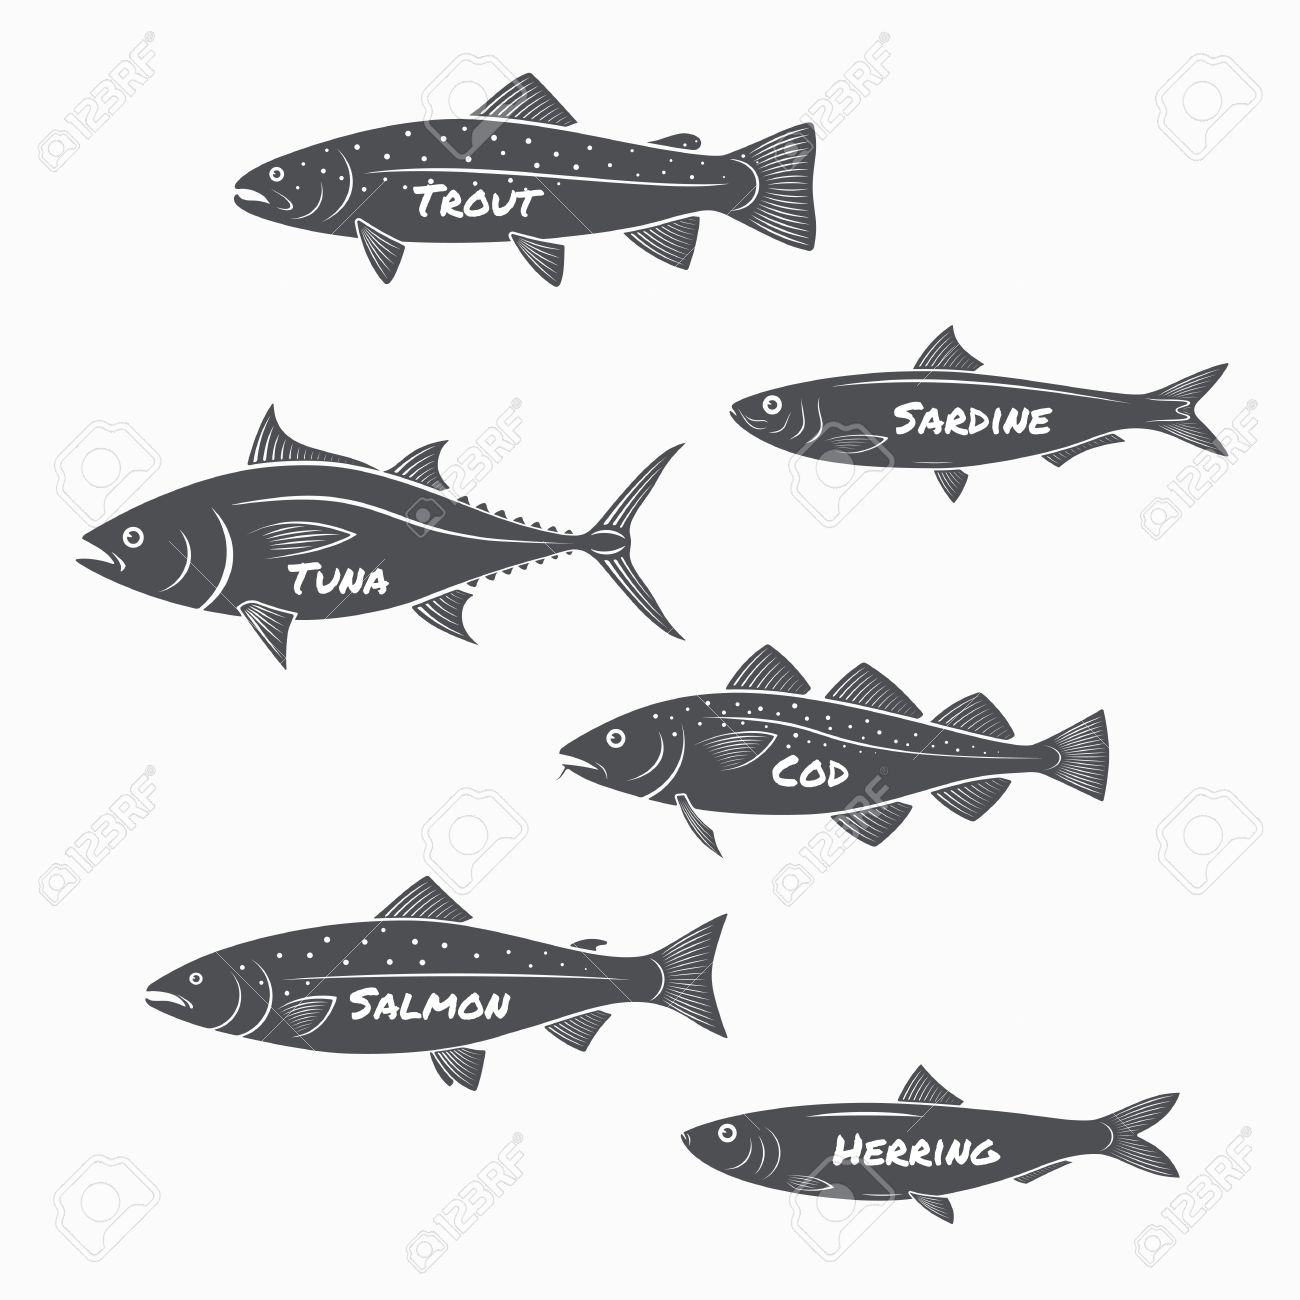 Set of fish silhouettes on white background. Trout, sardine, tuna, cod, salmon and herring labels. - 57737615